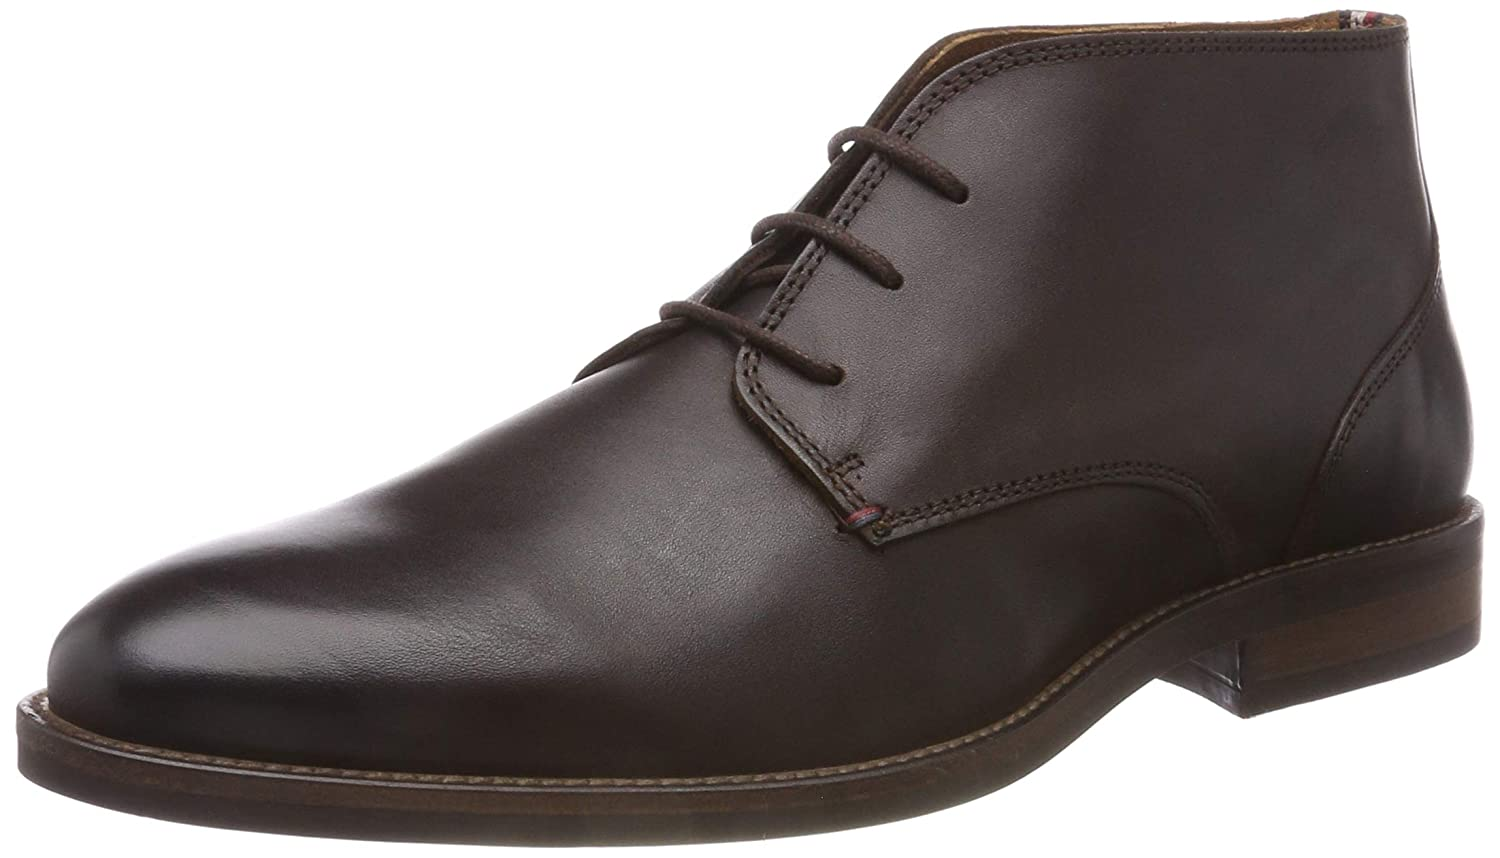 TALLA 44 EU. Tommy Hilfiger Essential Leather Boot, Zapatos de Cordones Derby para Hombre